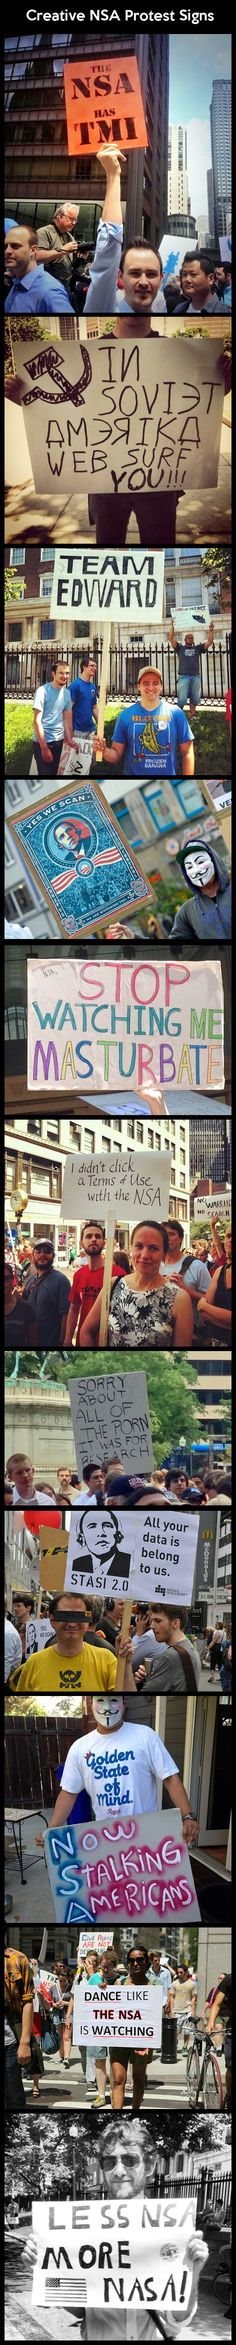 Creative NSA Protest Signs